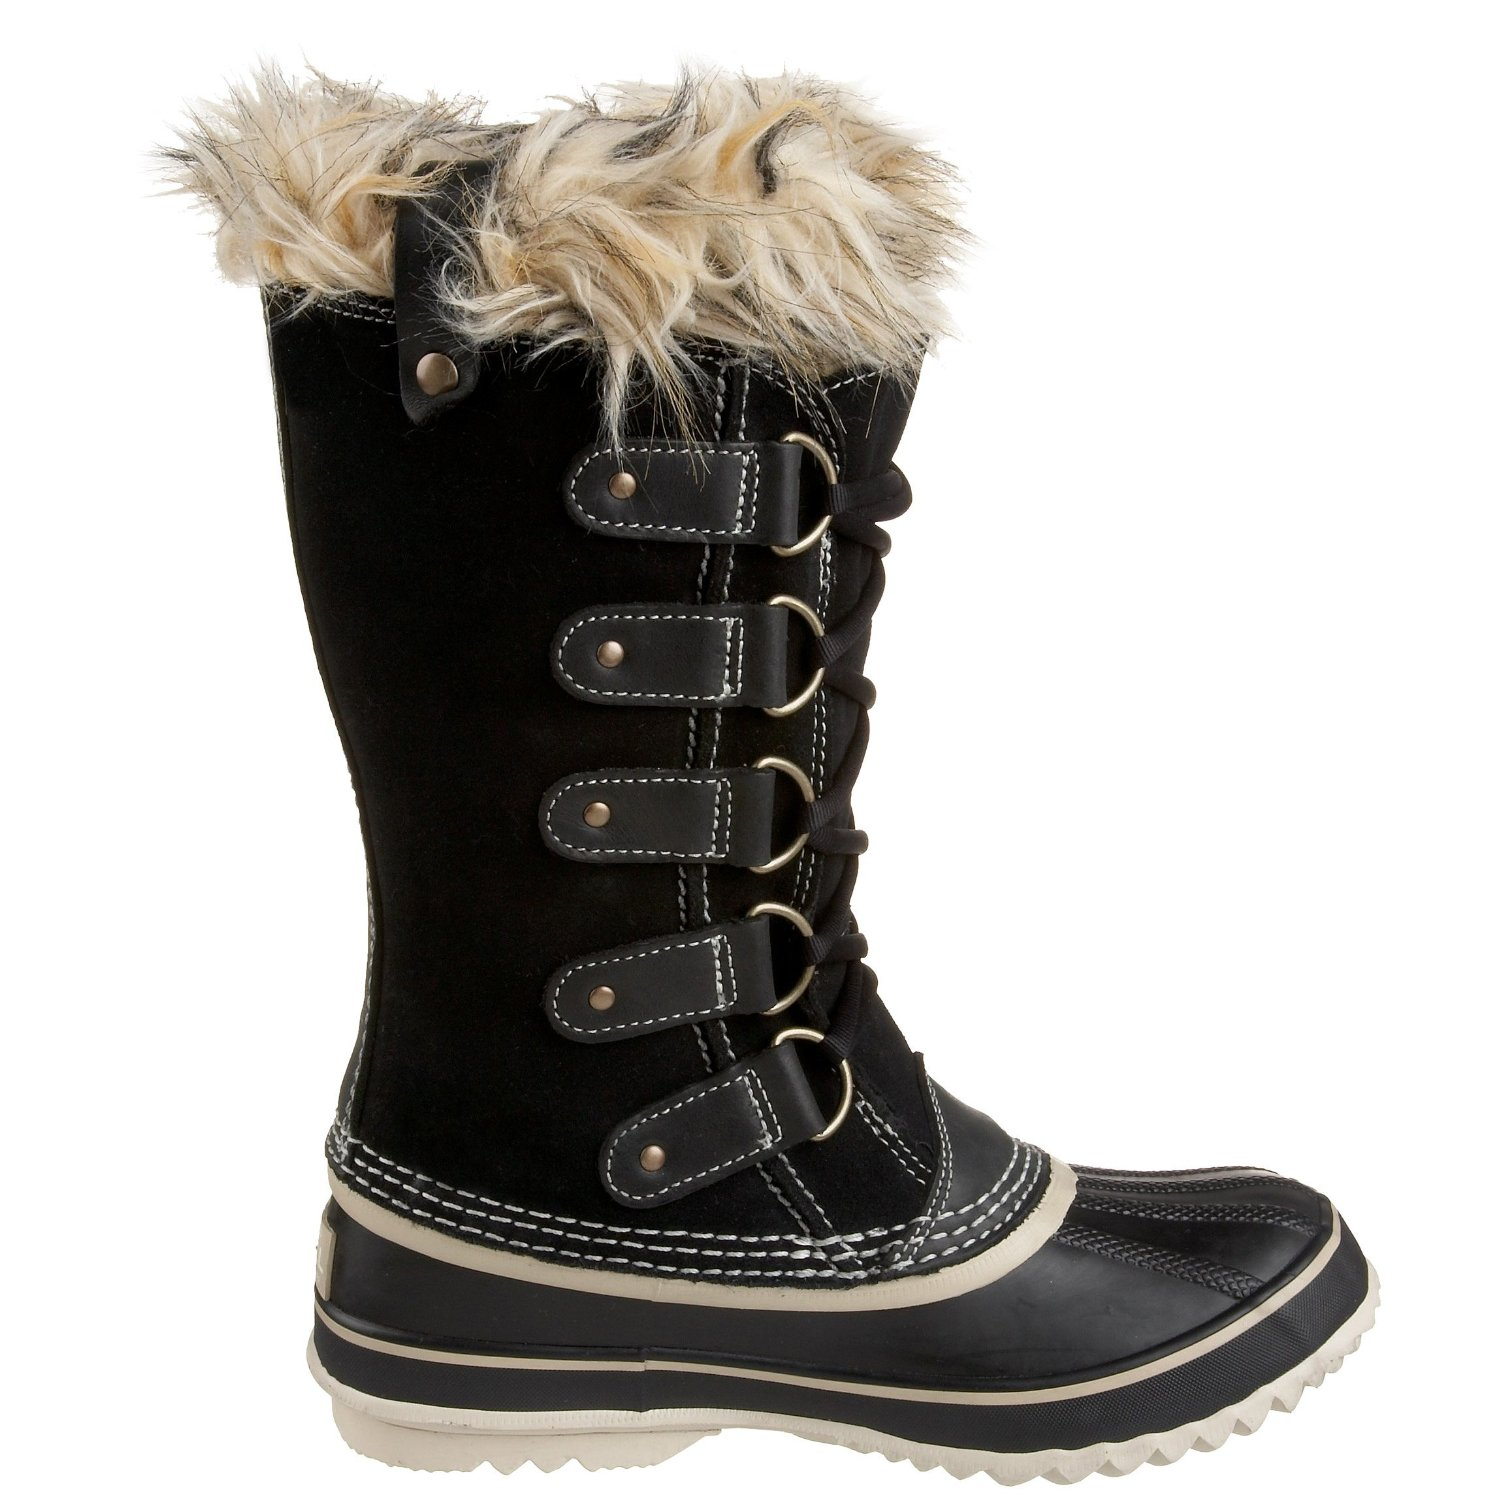 Winter Snow Boots Women Ec0L9Zuk